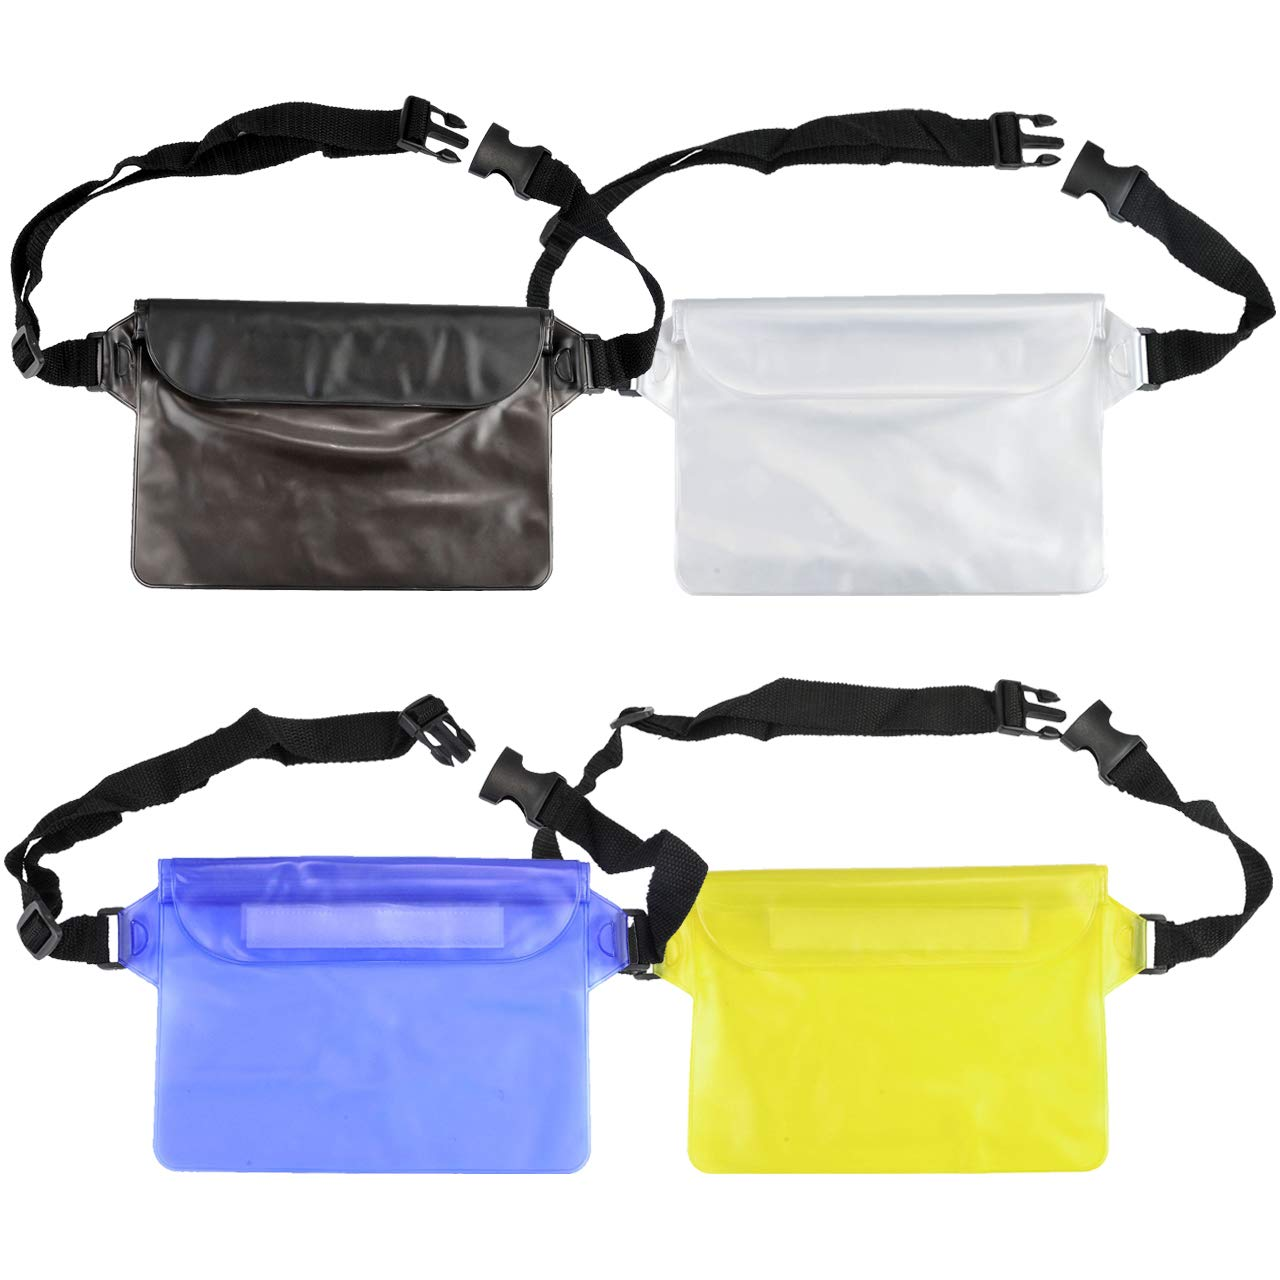 FALETO 4-Pack Waterproof Pouch with Adjustable Waist Strap Touchable Dry Bag Phone Pouch for Swimming Boating Snorkeling Kayaking Water Parks